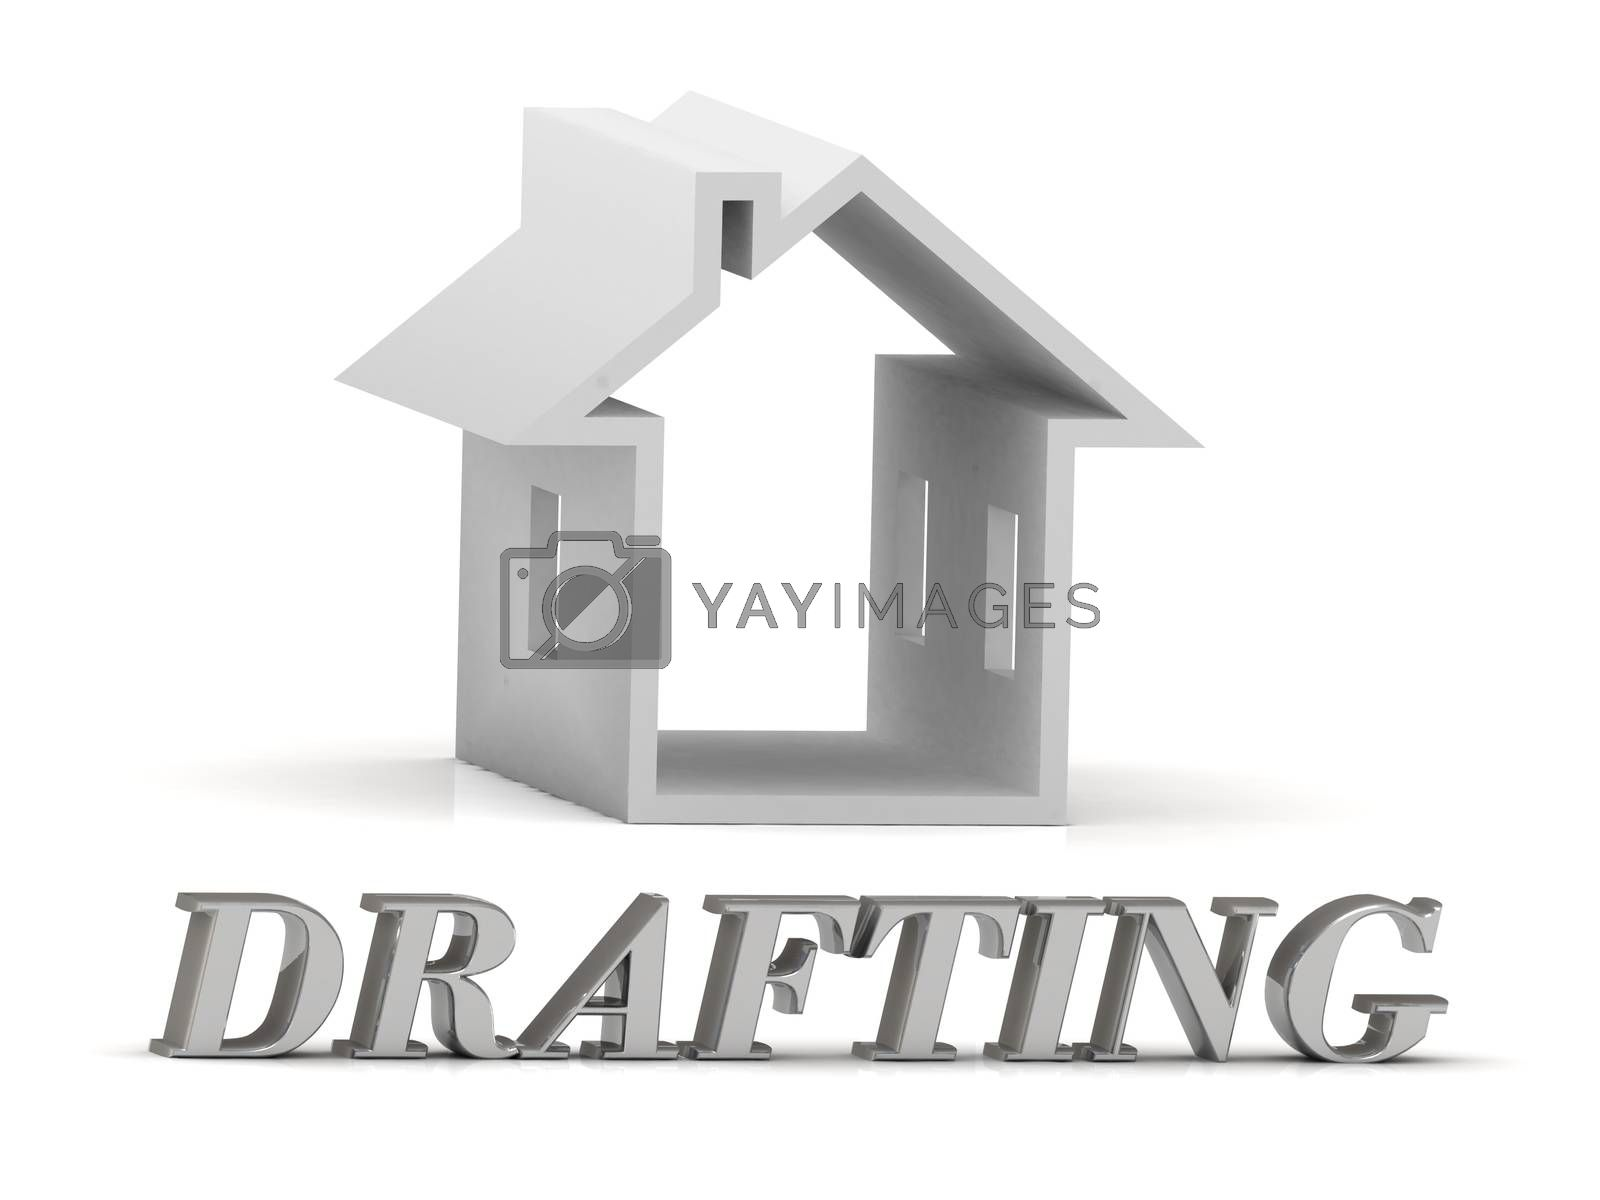 DRAFTING- inscription of silver letters and white house on white background